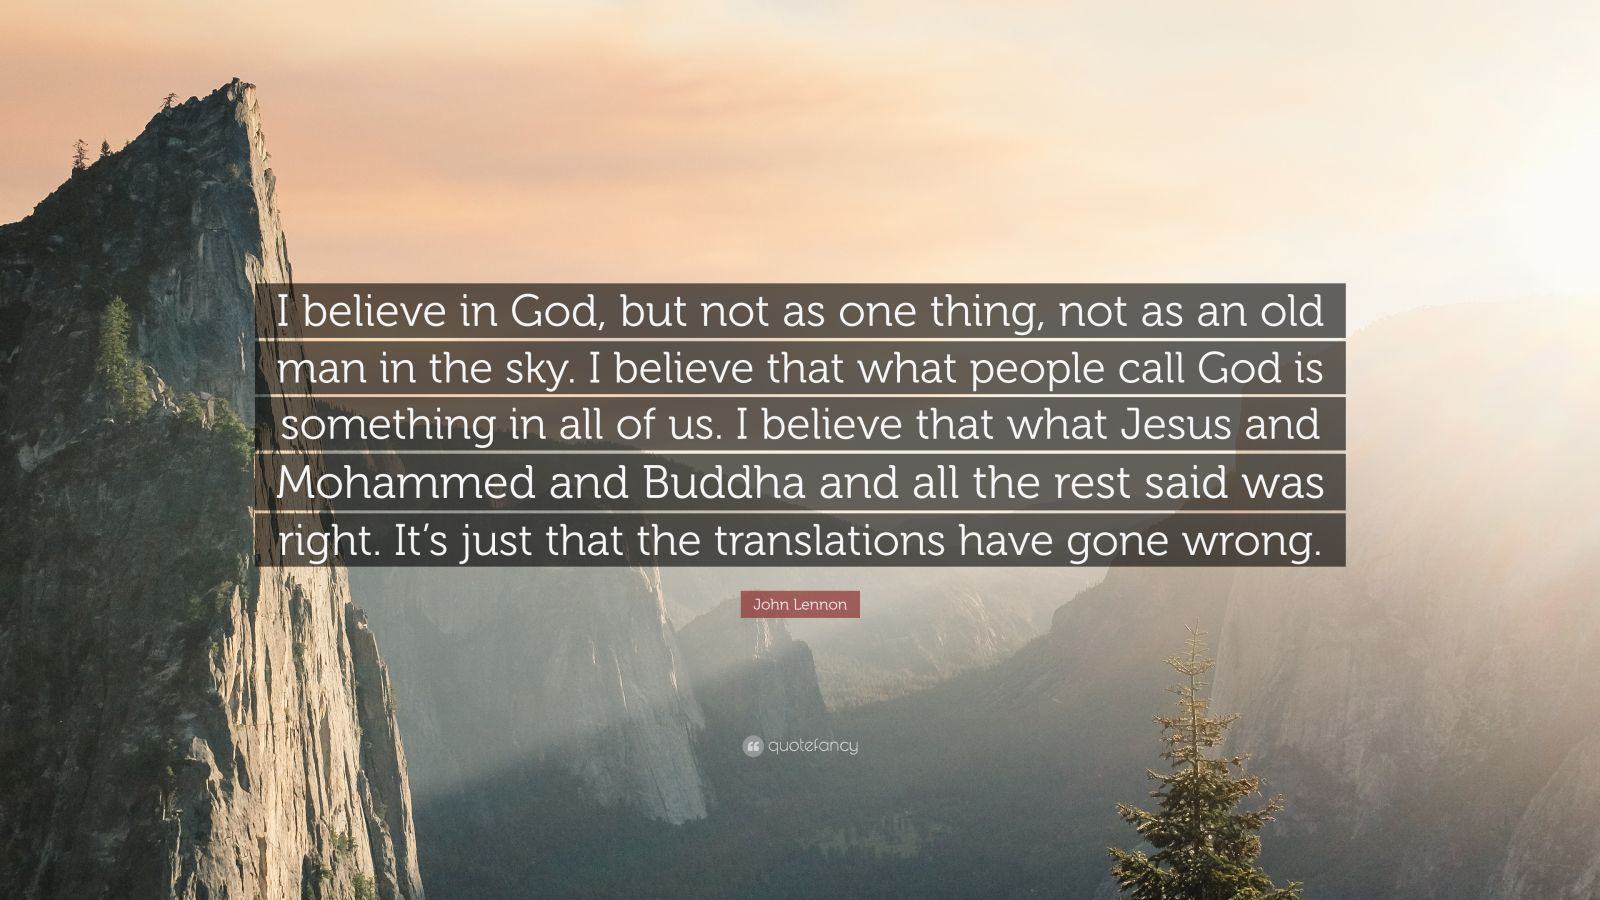 """John Lennon Quote: """"I believe in God, but not as one thing, not as an old man in the sky. I believe that what people call God is something in all of us. I believe that what Jesus and Mohammed and Buddha and all the rest said was right. It's just that the translations have gone wrong."""""""